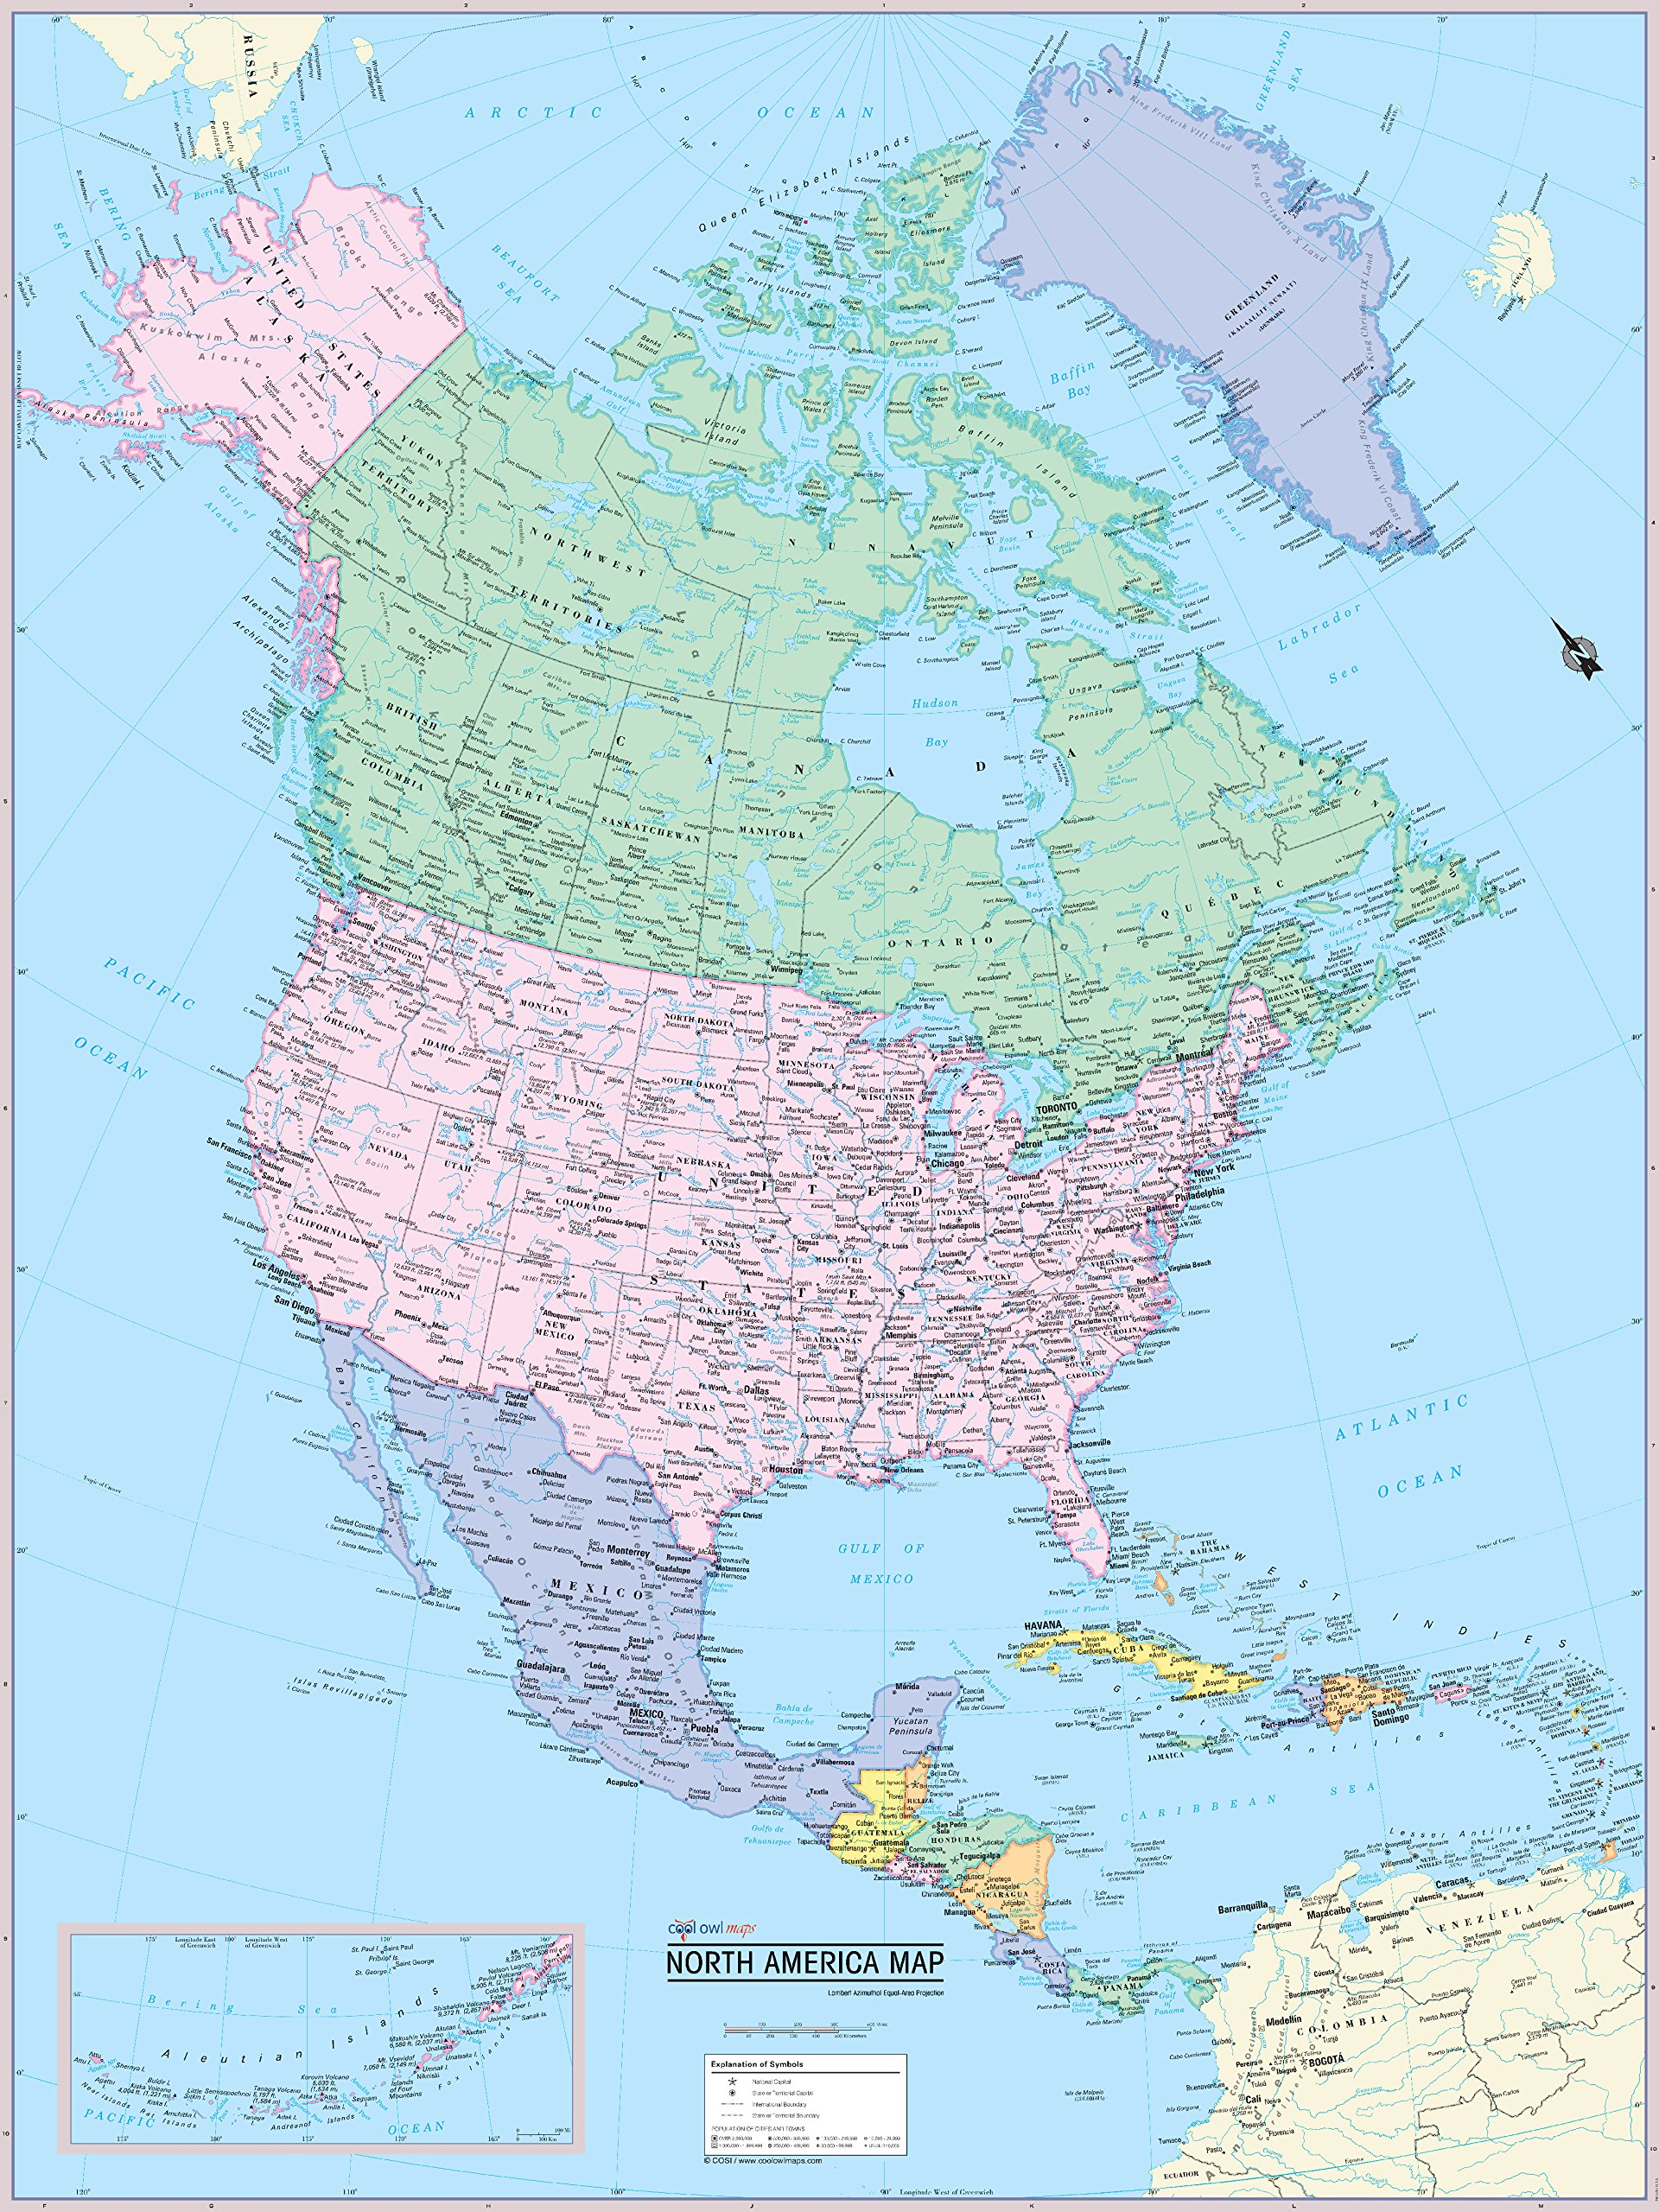 CoolOwlMaps North America Continent Wall Map Poster - Rolled (laminated 24x32)